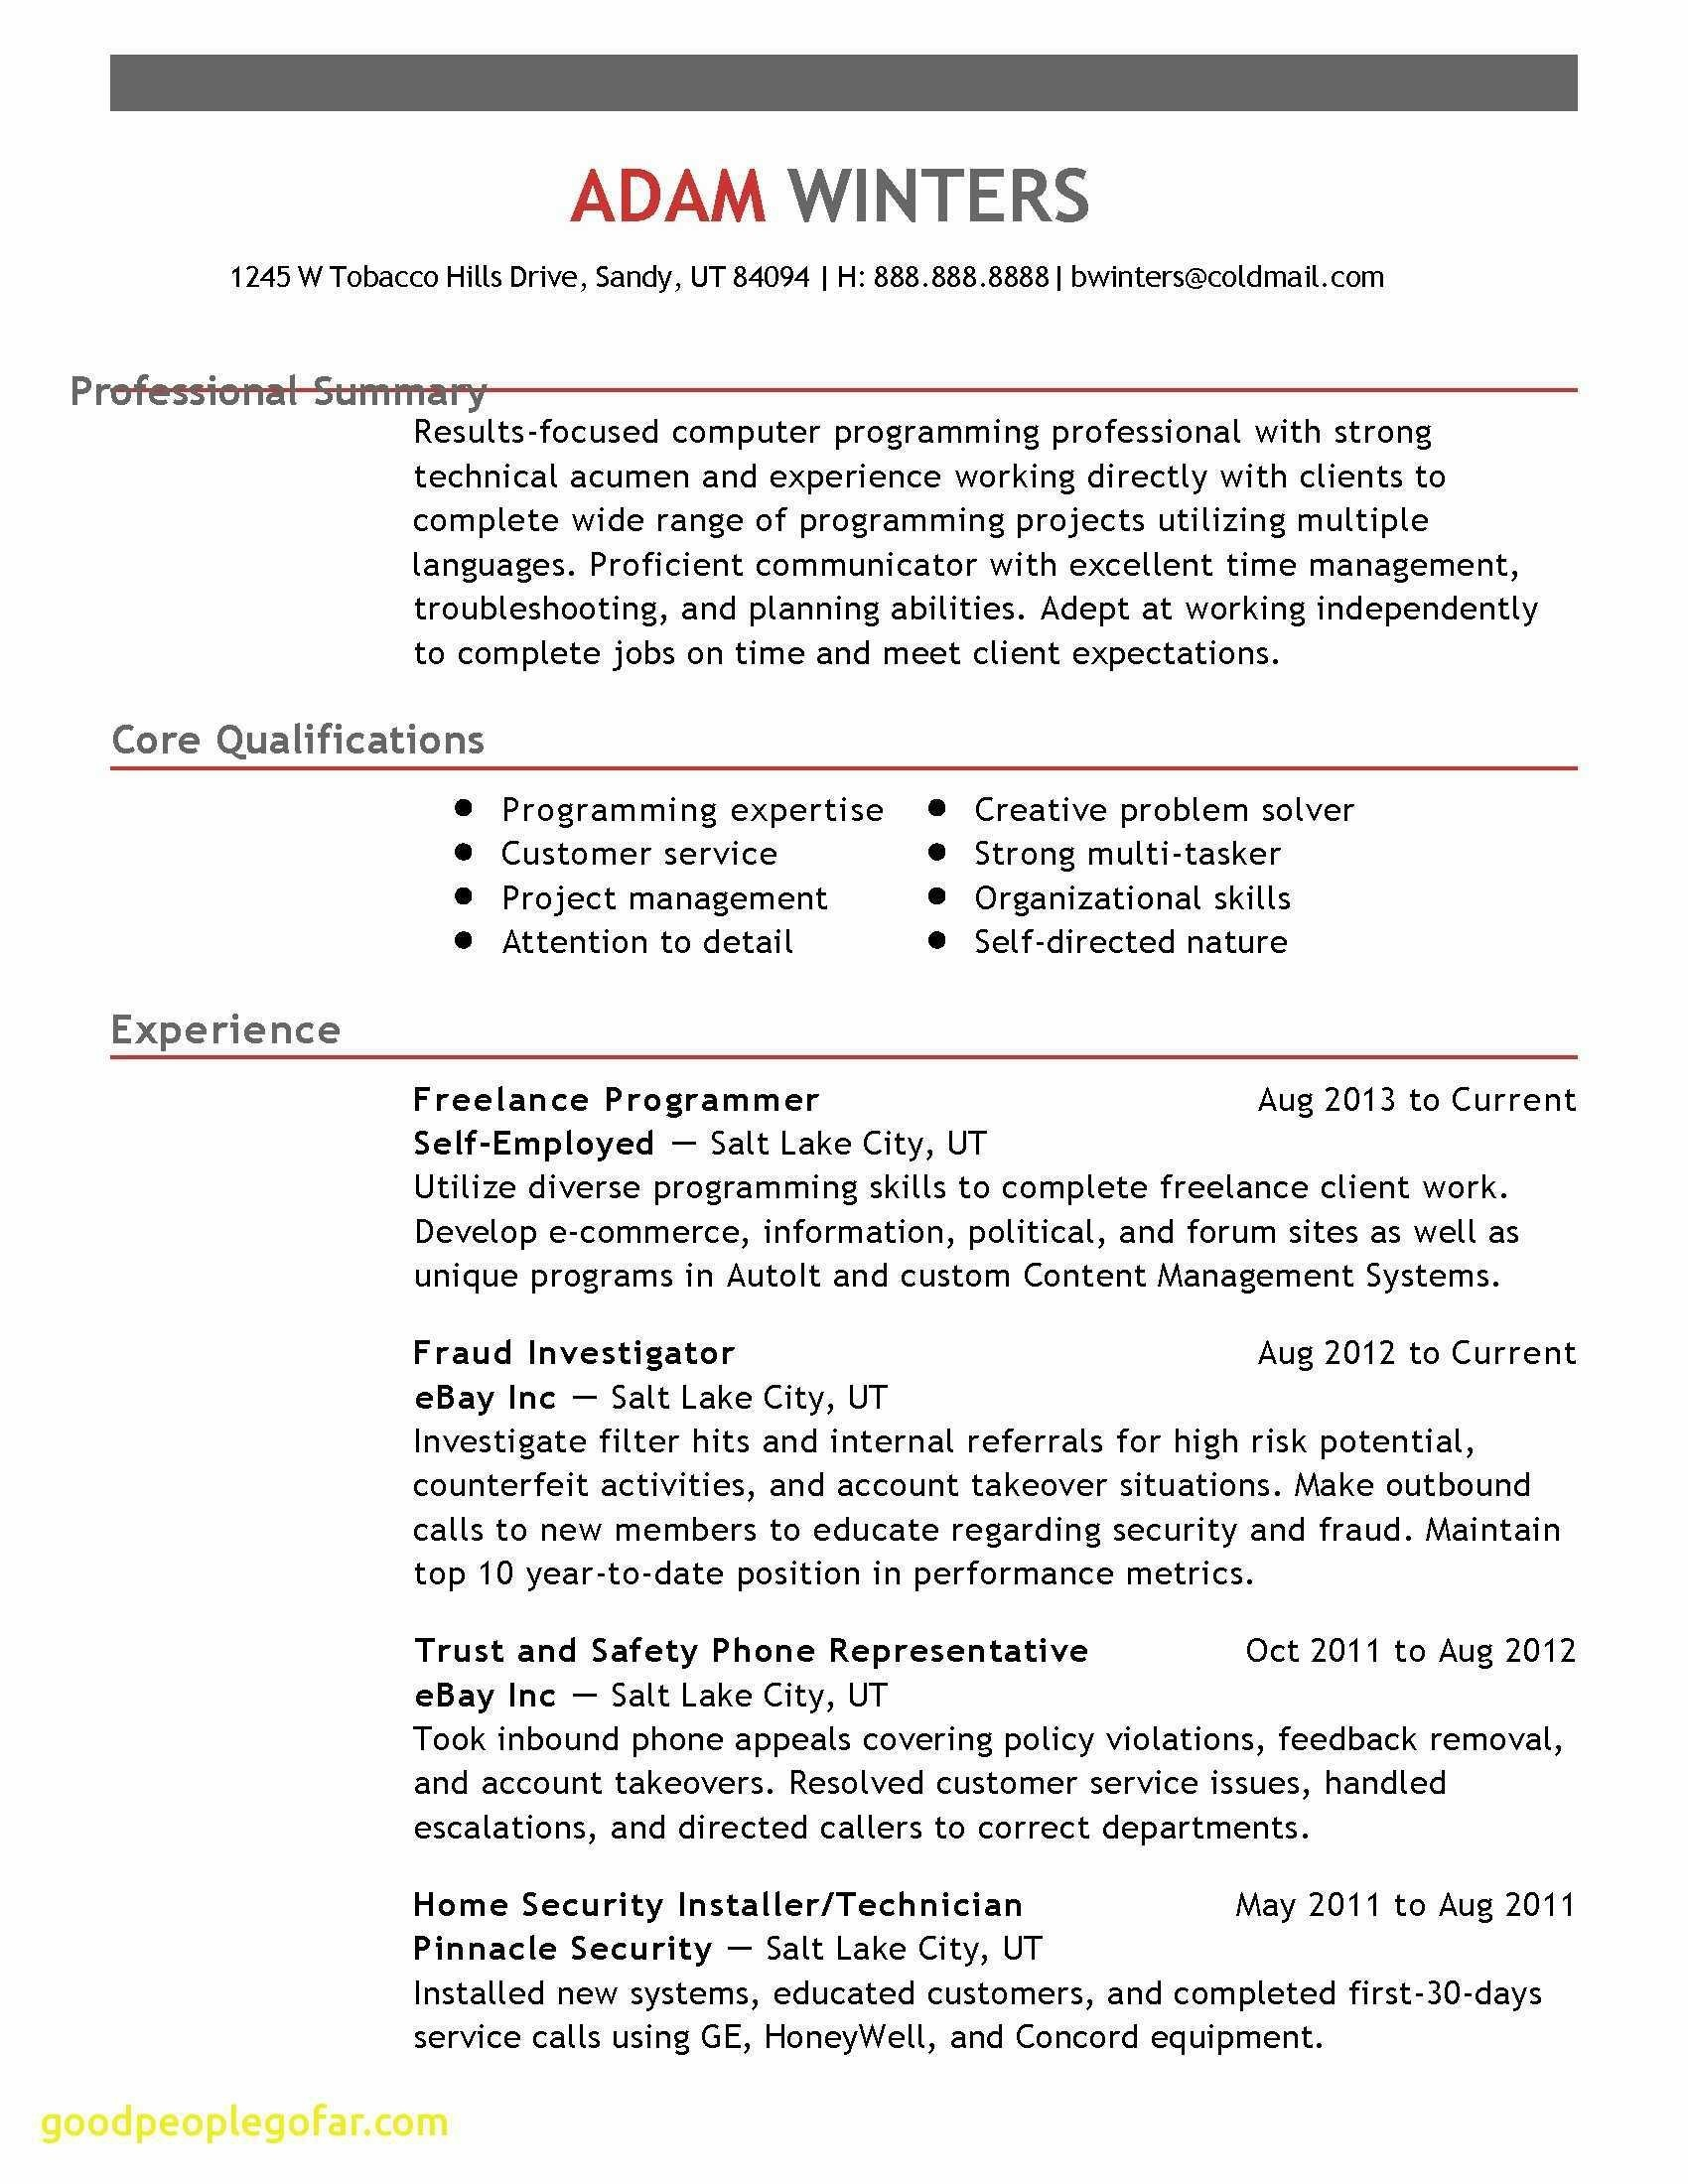 Best Sites to Post Resume - Resume Website Examples New Resume Website Template Free